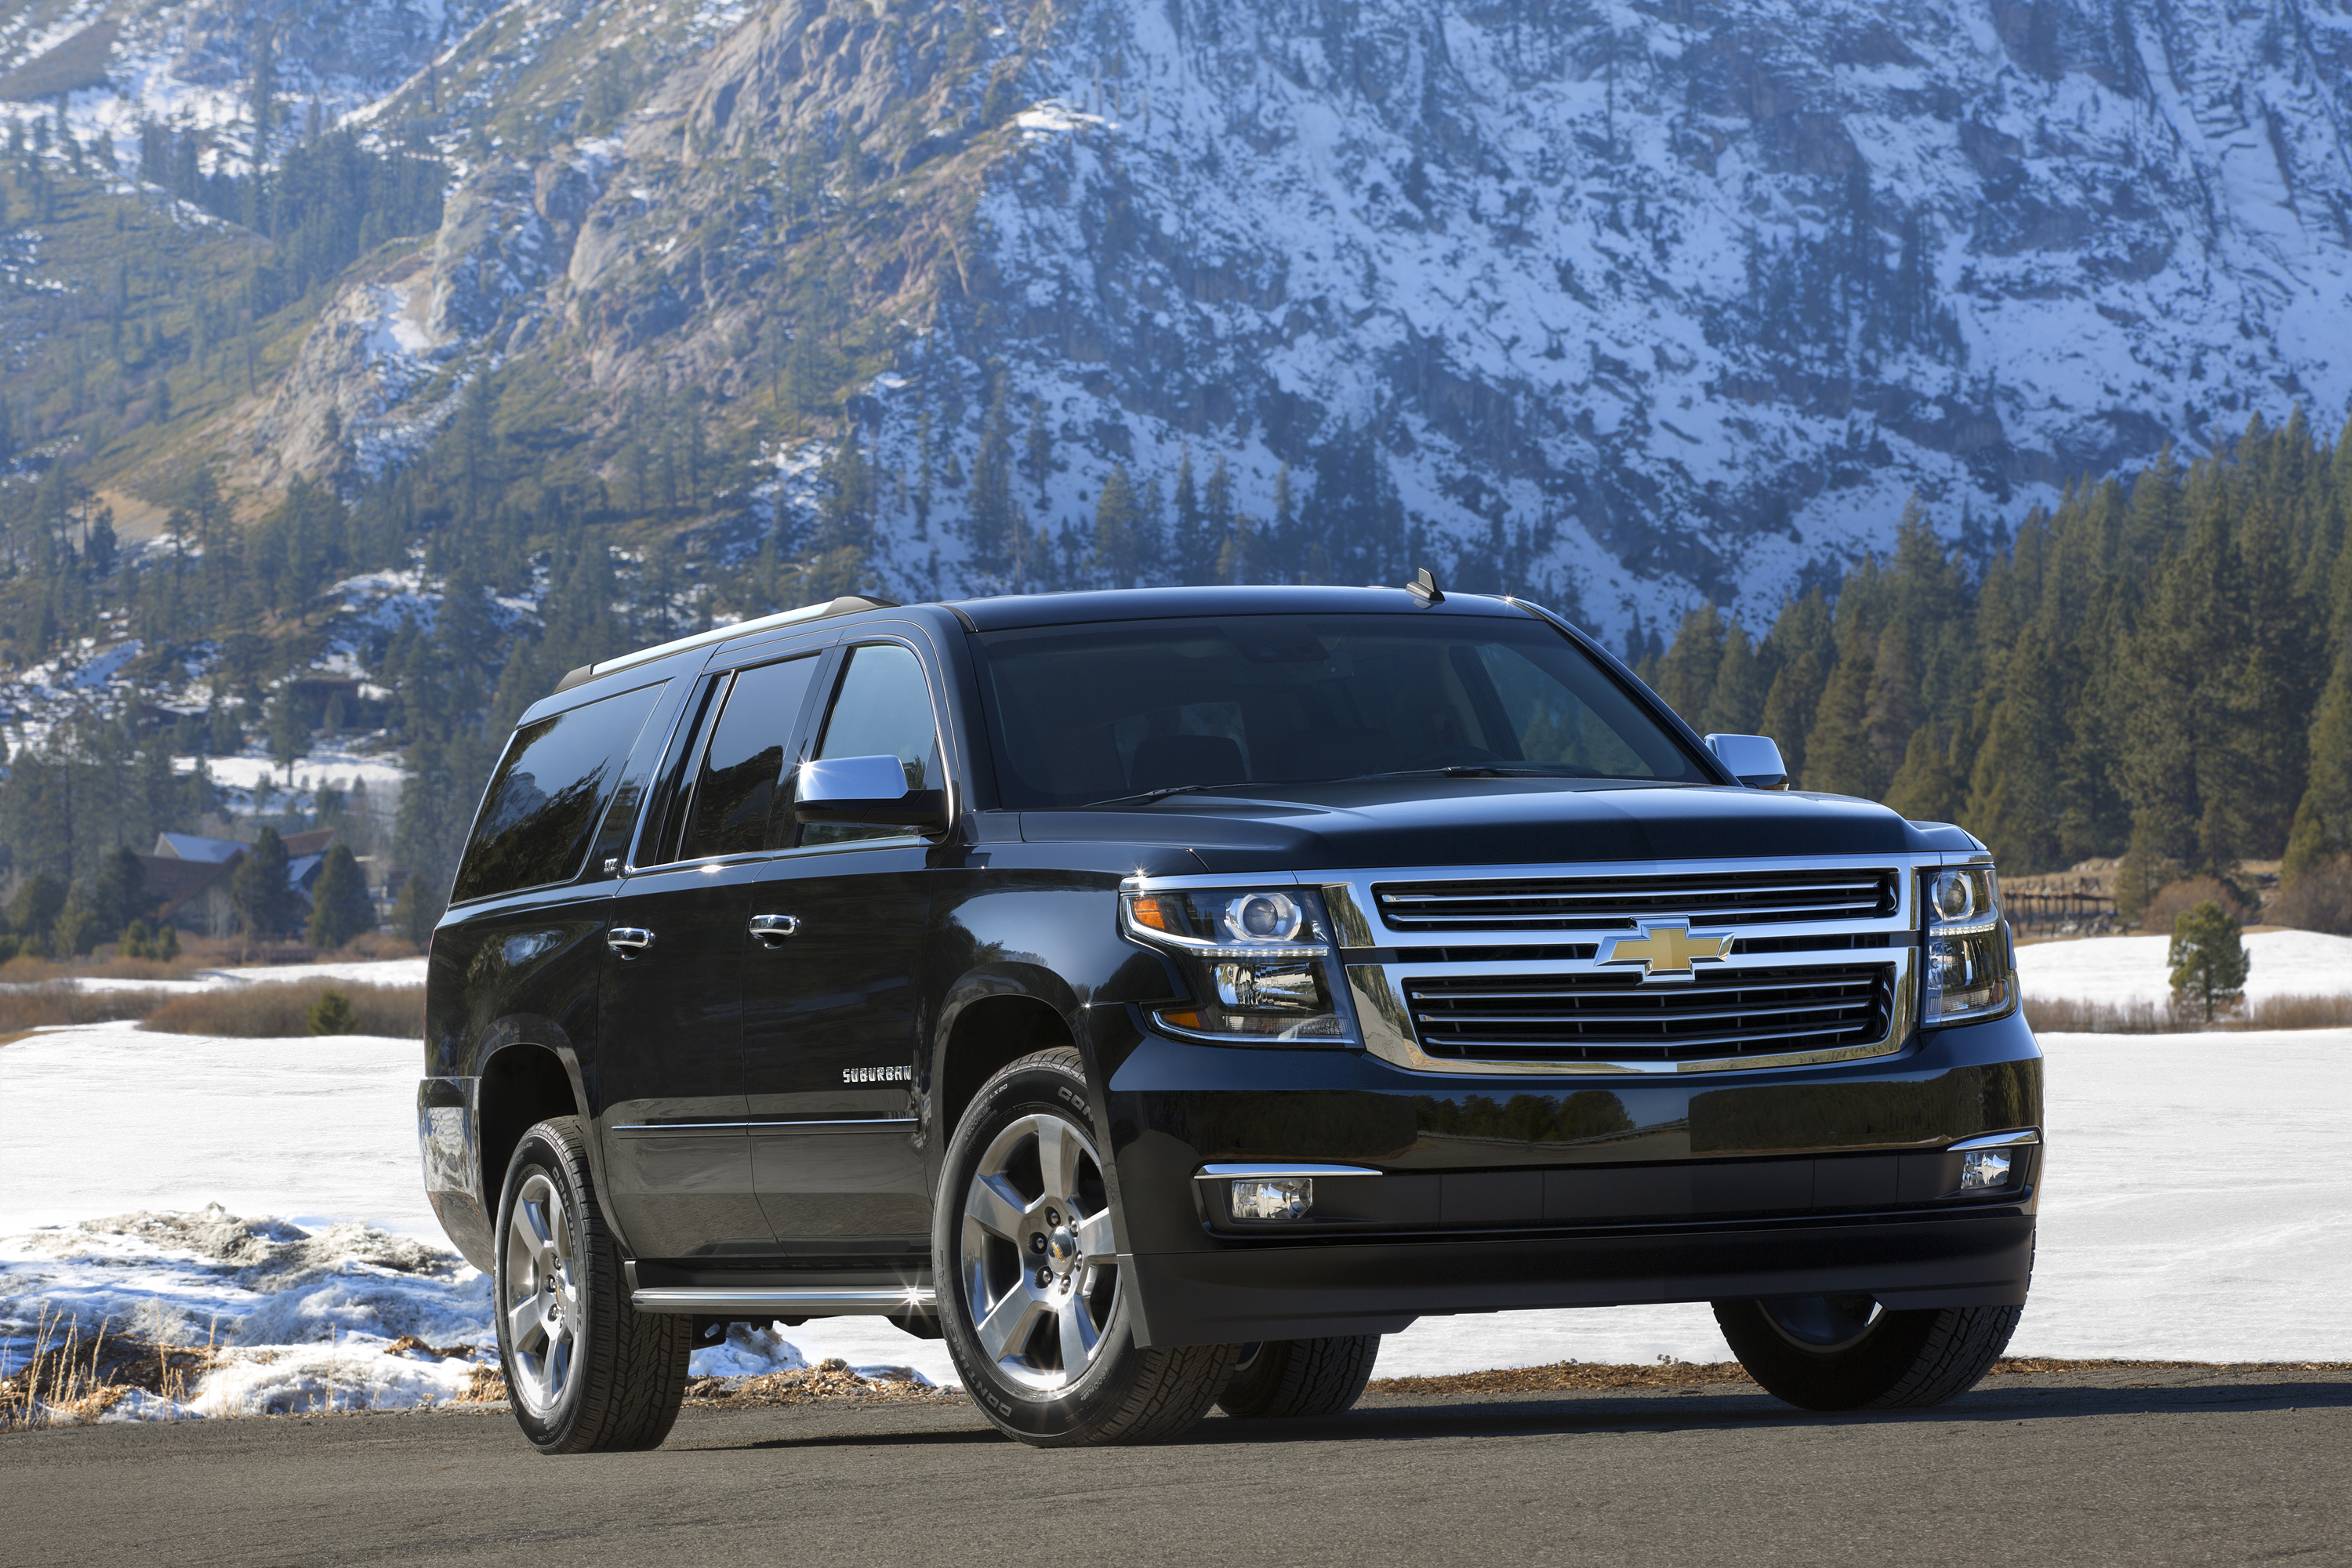 2015 Chevrolet Suburban Specifications on